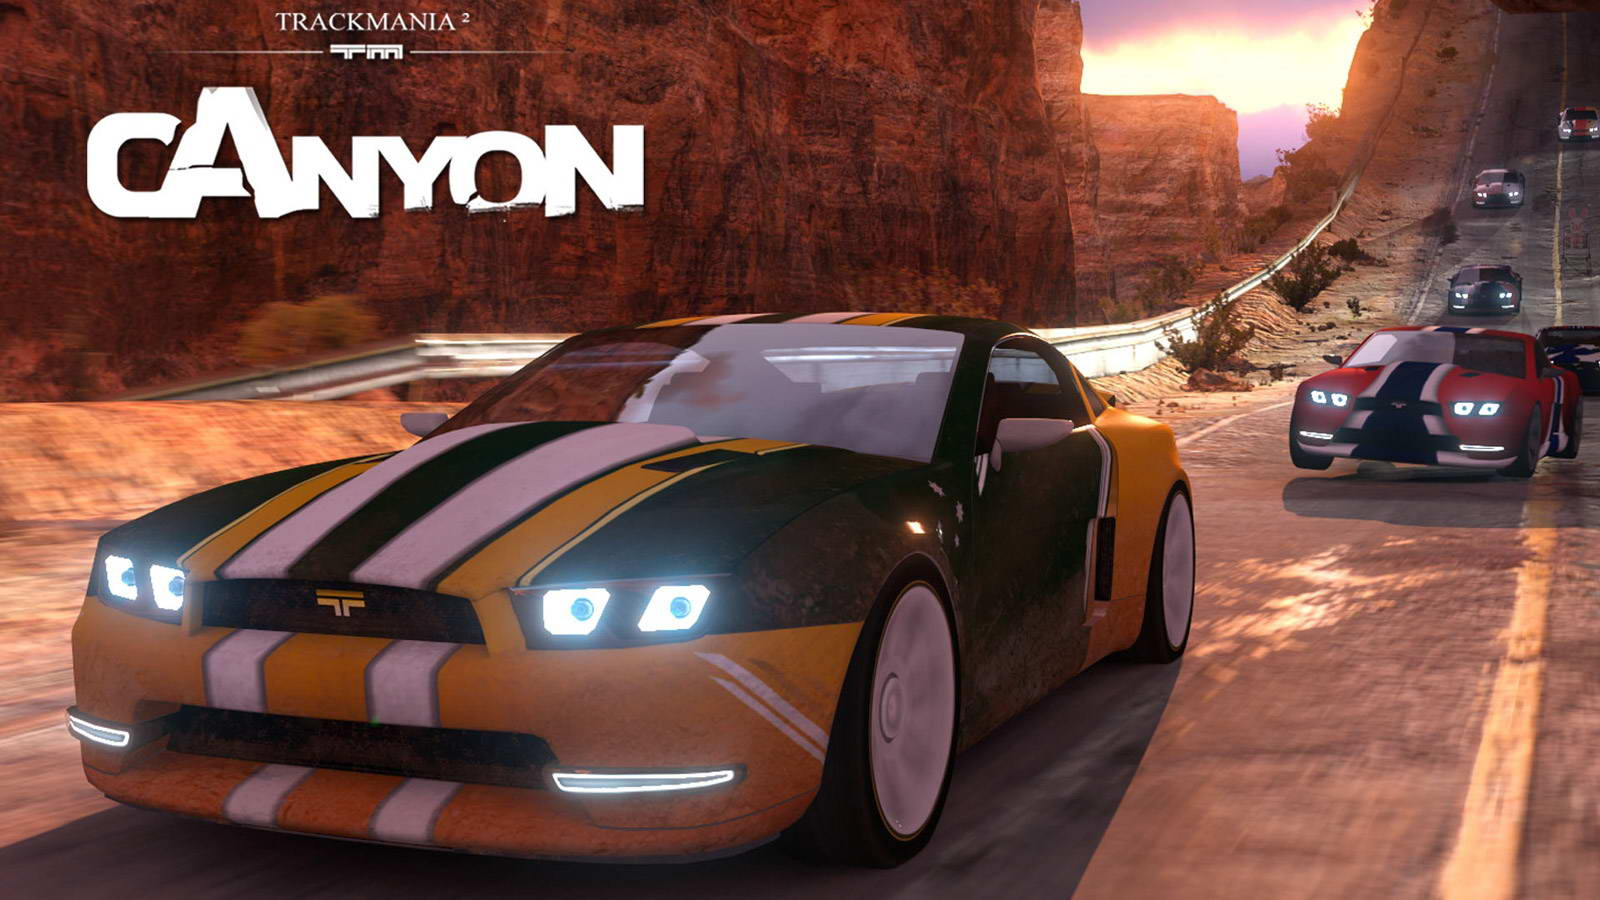 Скриншот TrackMania 2: Canyon